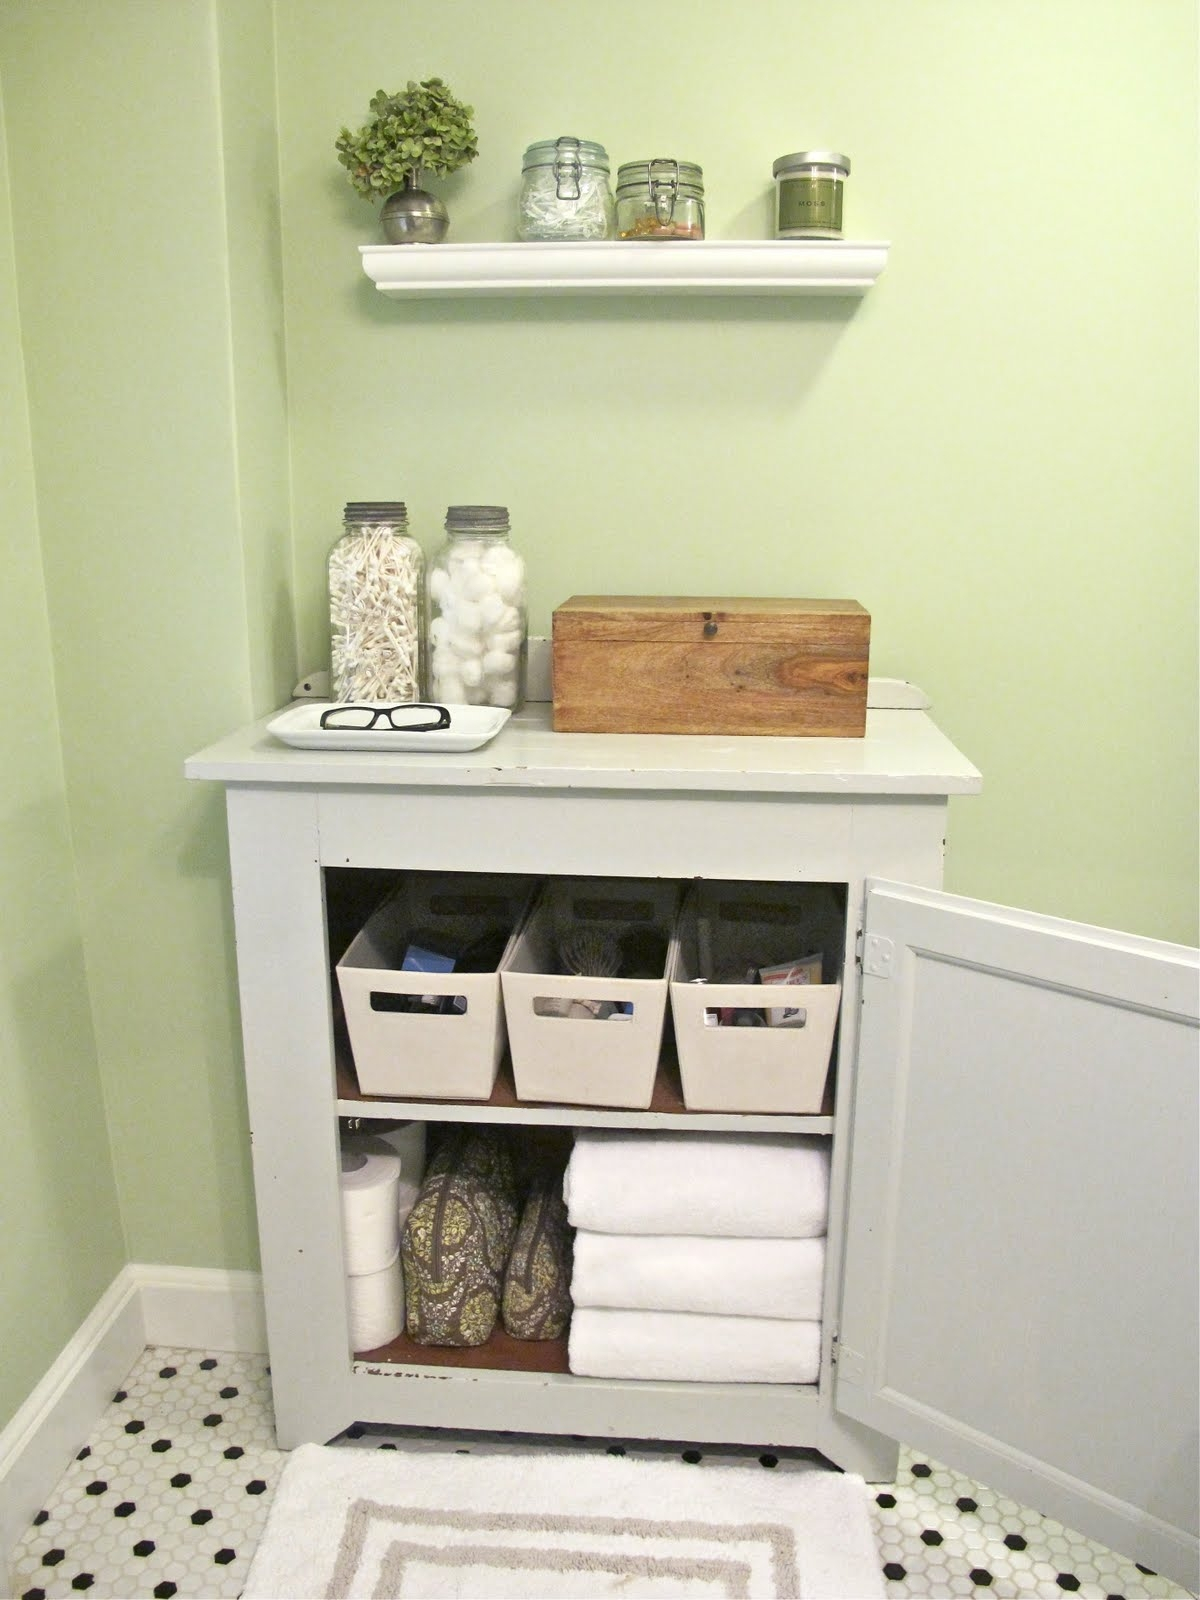 Storage Containers For Bathroom Cabinets Storage Cabinet pertaining to measurements 1200 X 1600